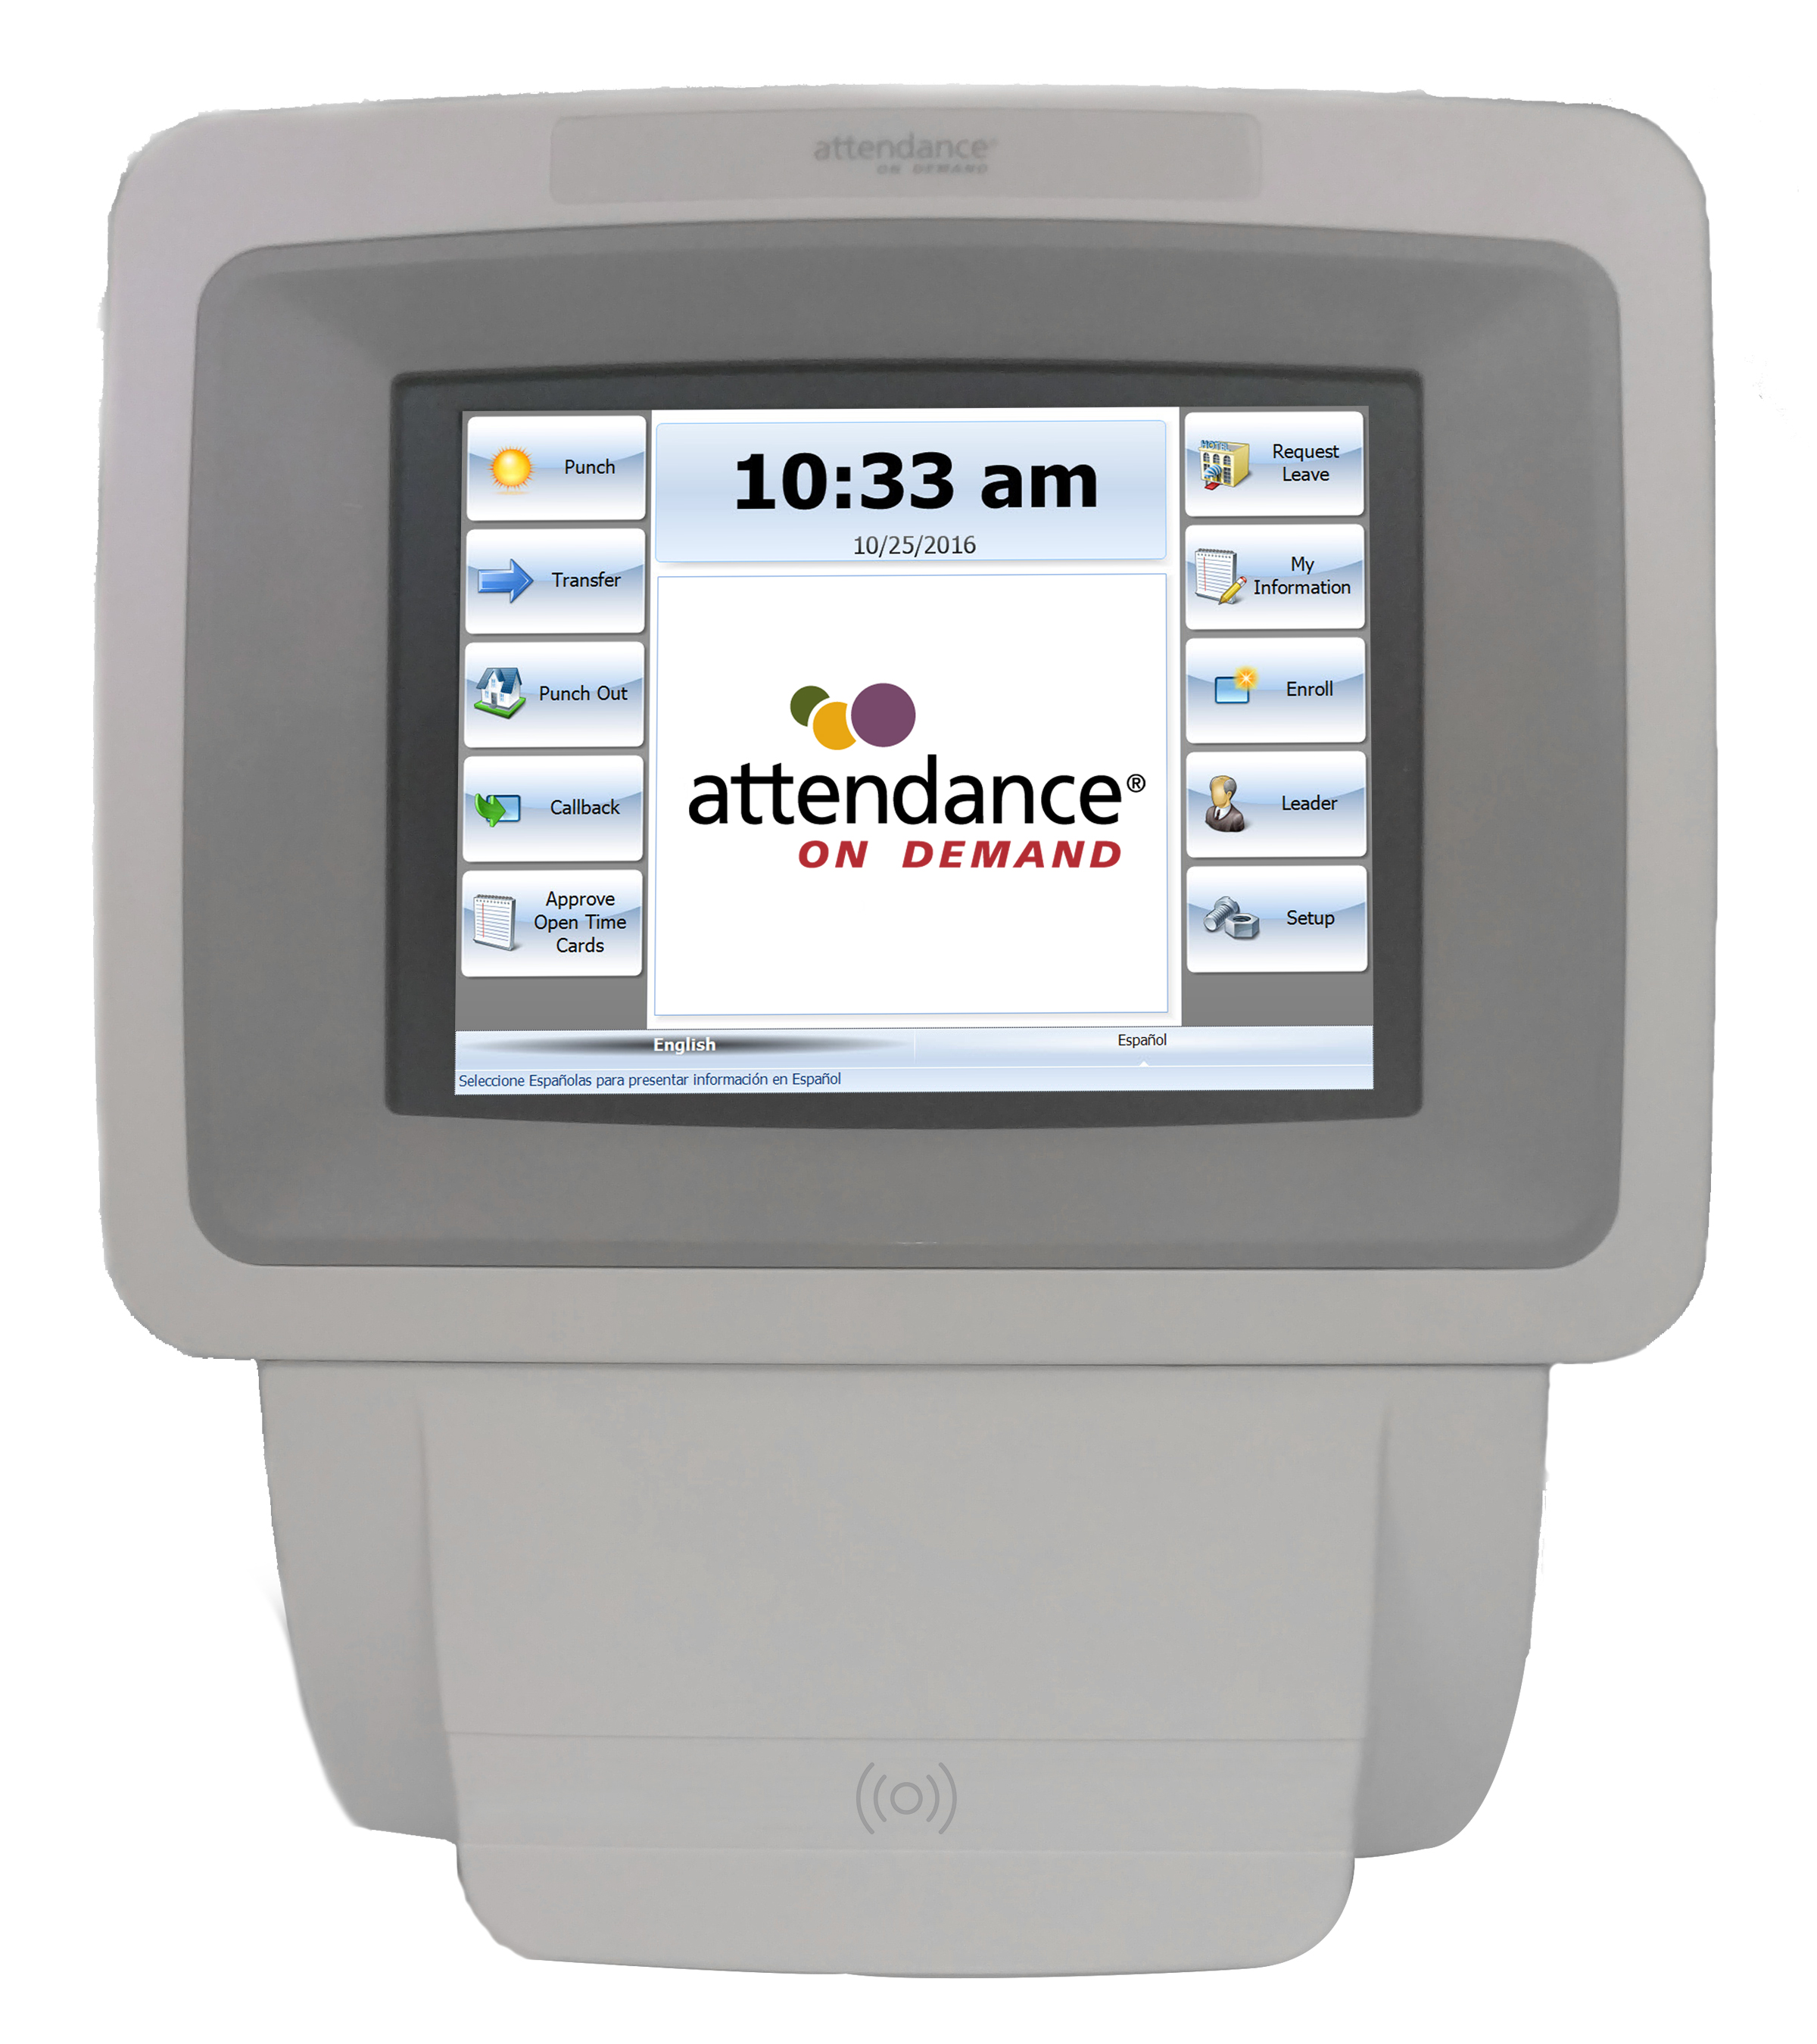 IntelliTouch 60 proximity reader